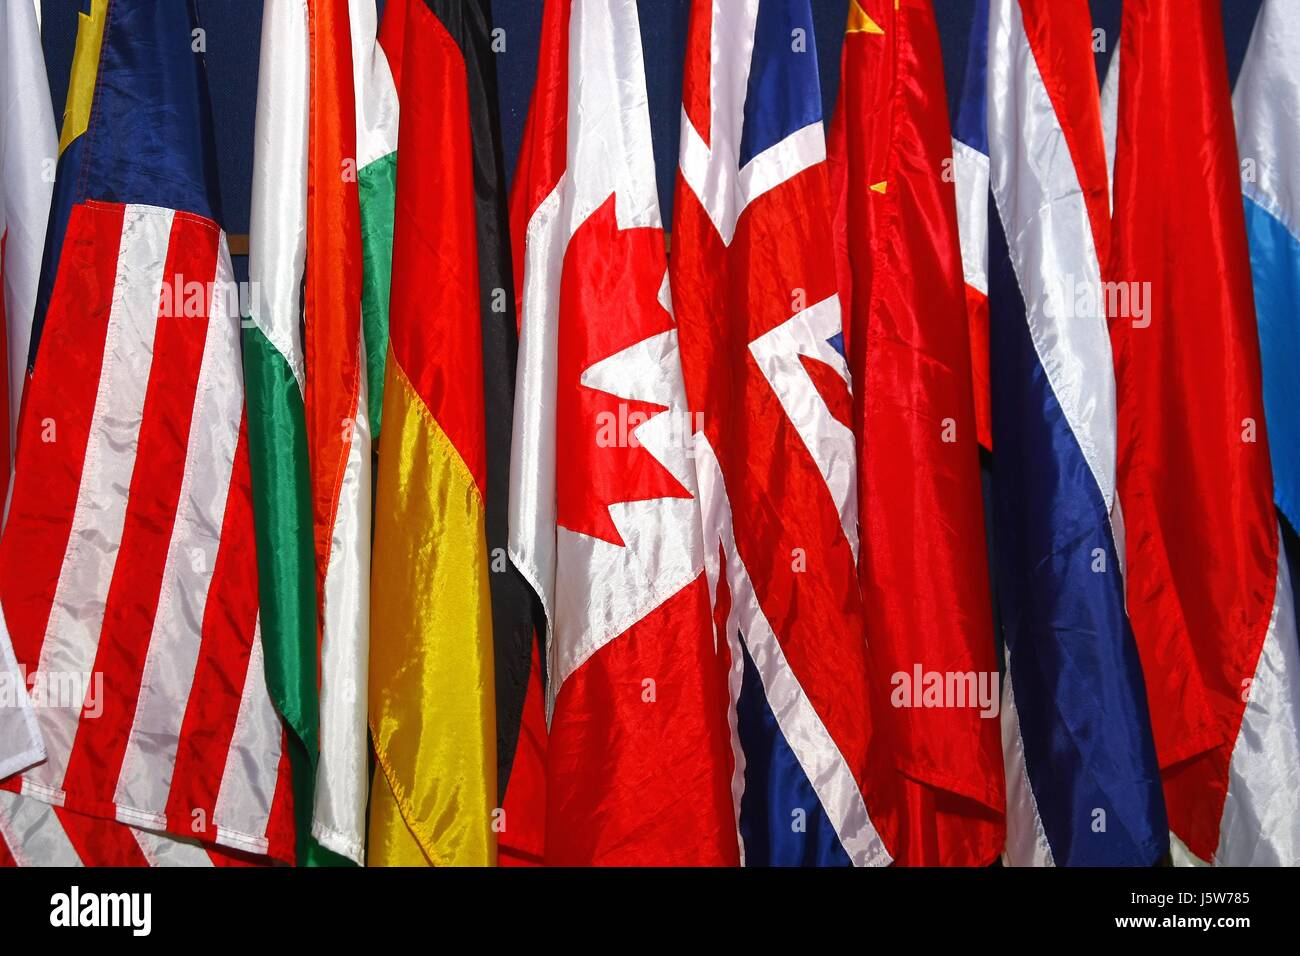 Photo of assorted flags of different countries Stock Photo